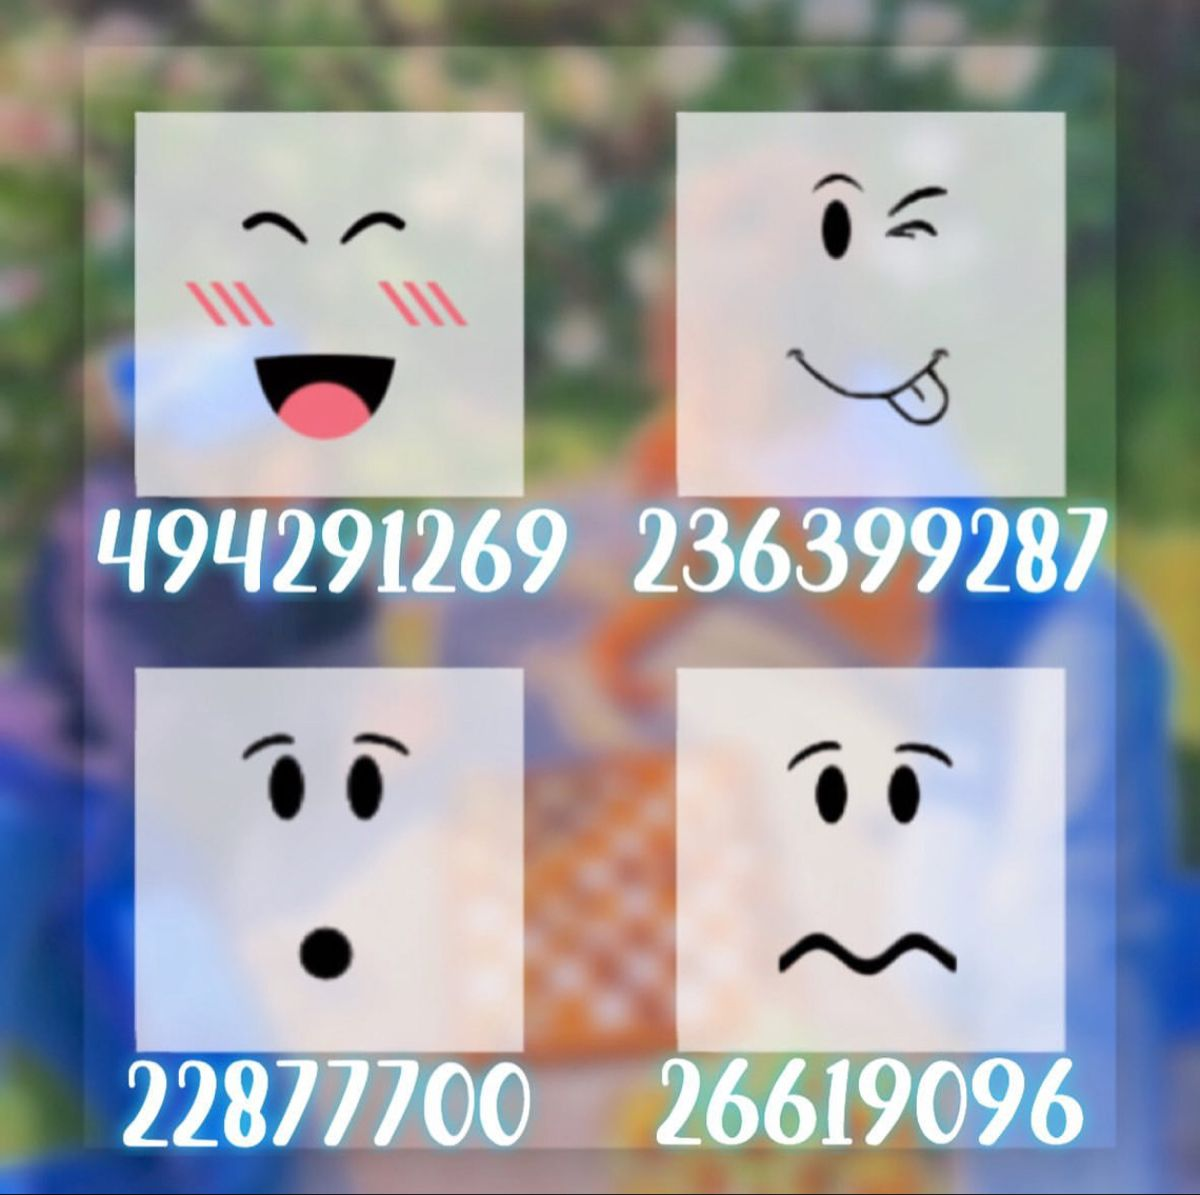 Aesthetic Face s Bloxburg decal codes Custom decals Free gift